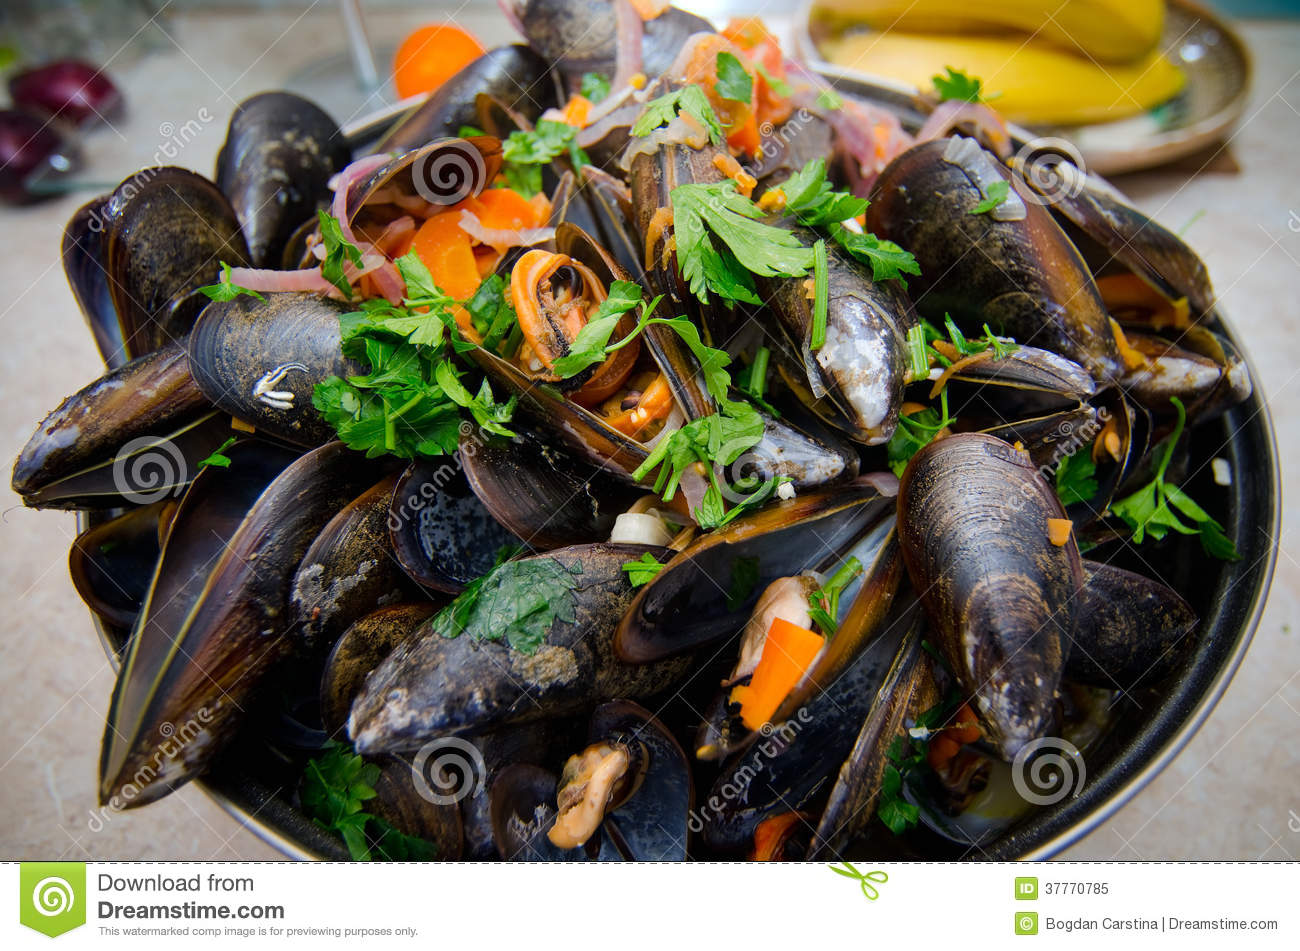 Mussels With Vegetables Royalty Free Stock Photo - Image: 37770785